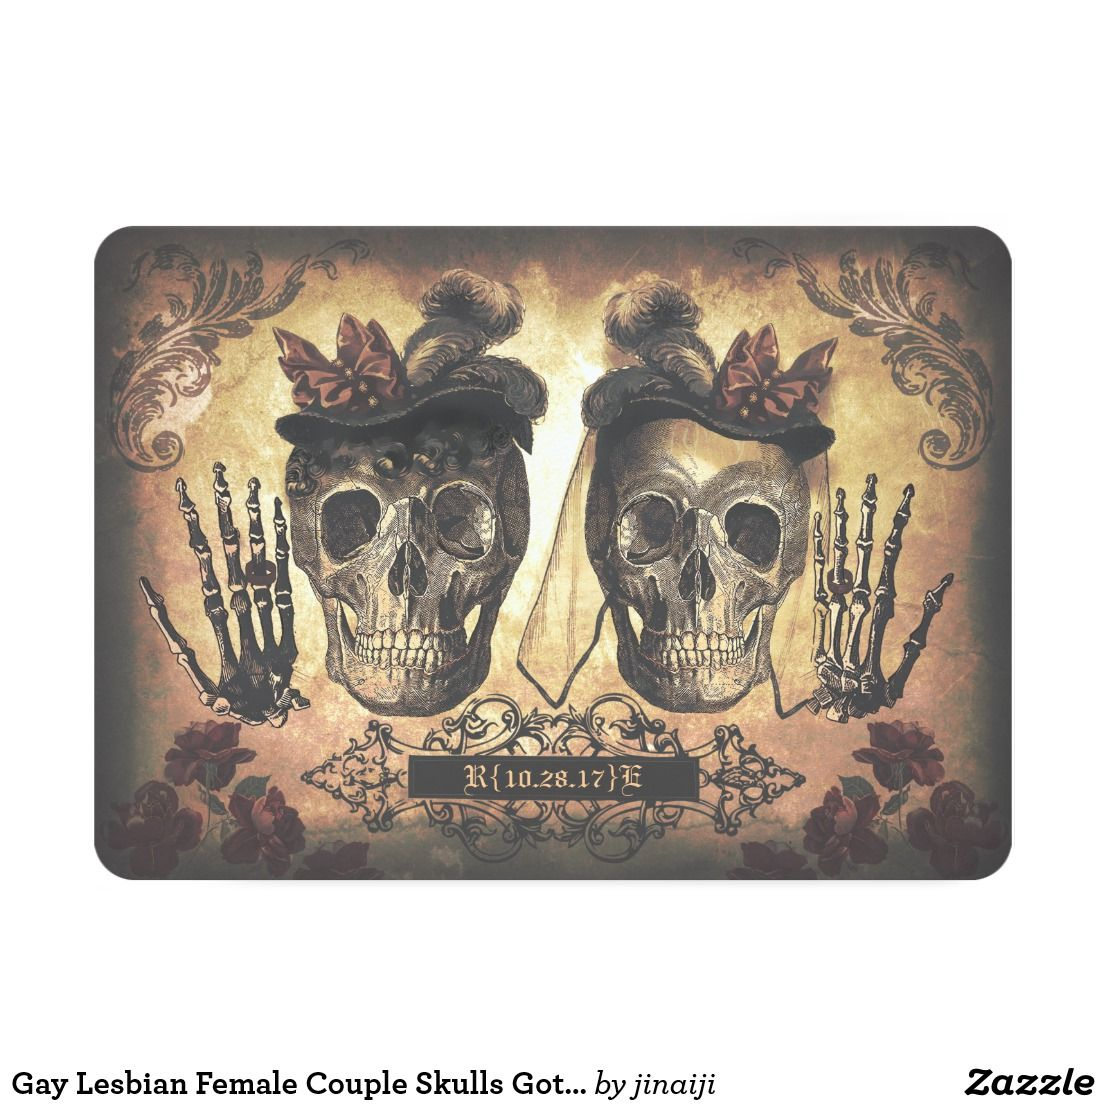 Gay Lesbian Female Couple Skulls Gothic Wedding Card Gothic